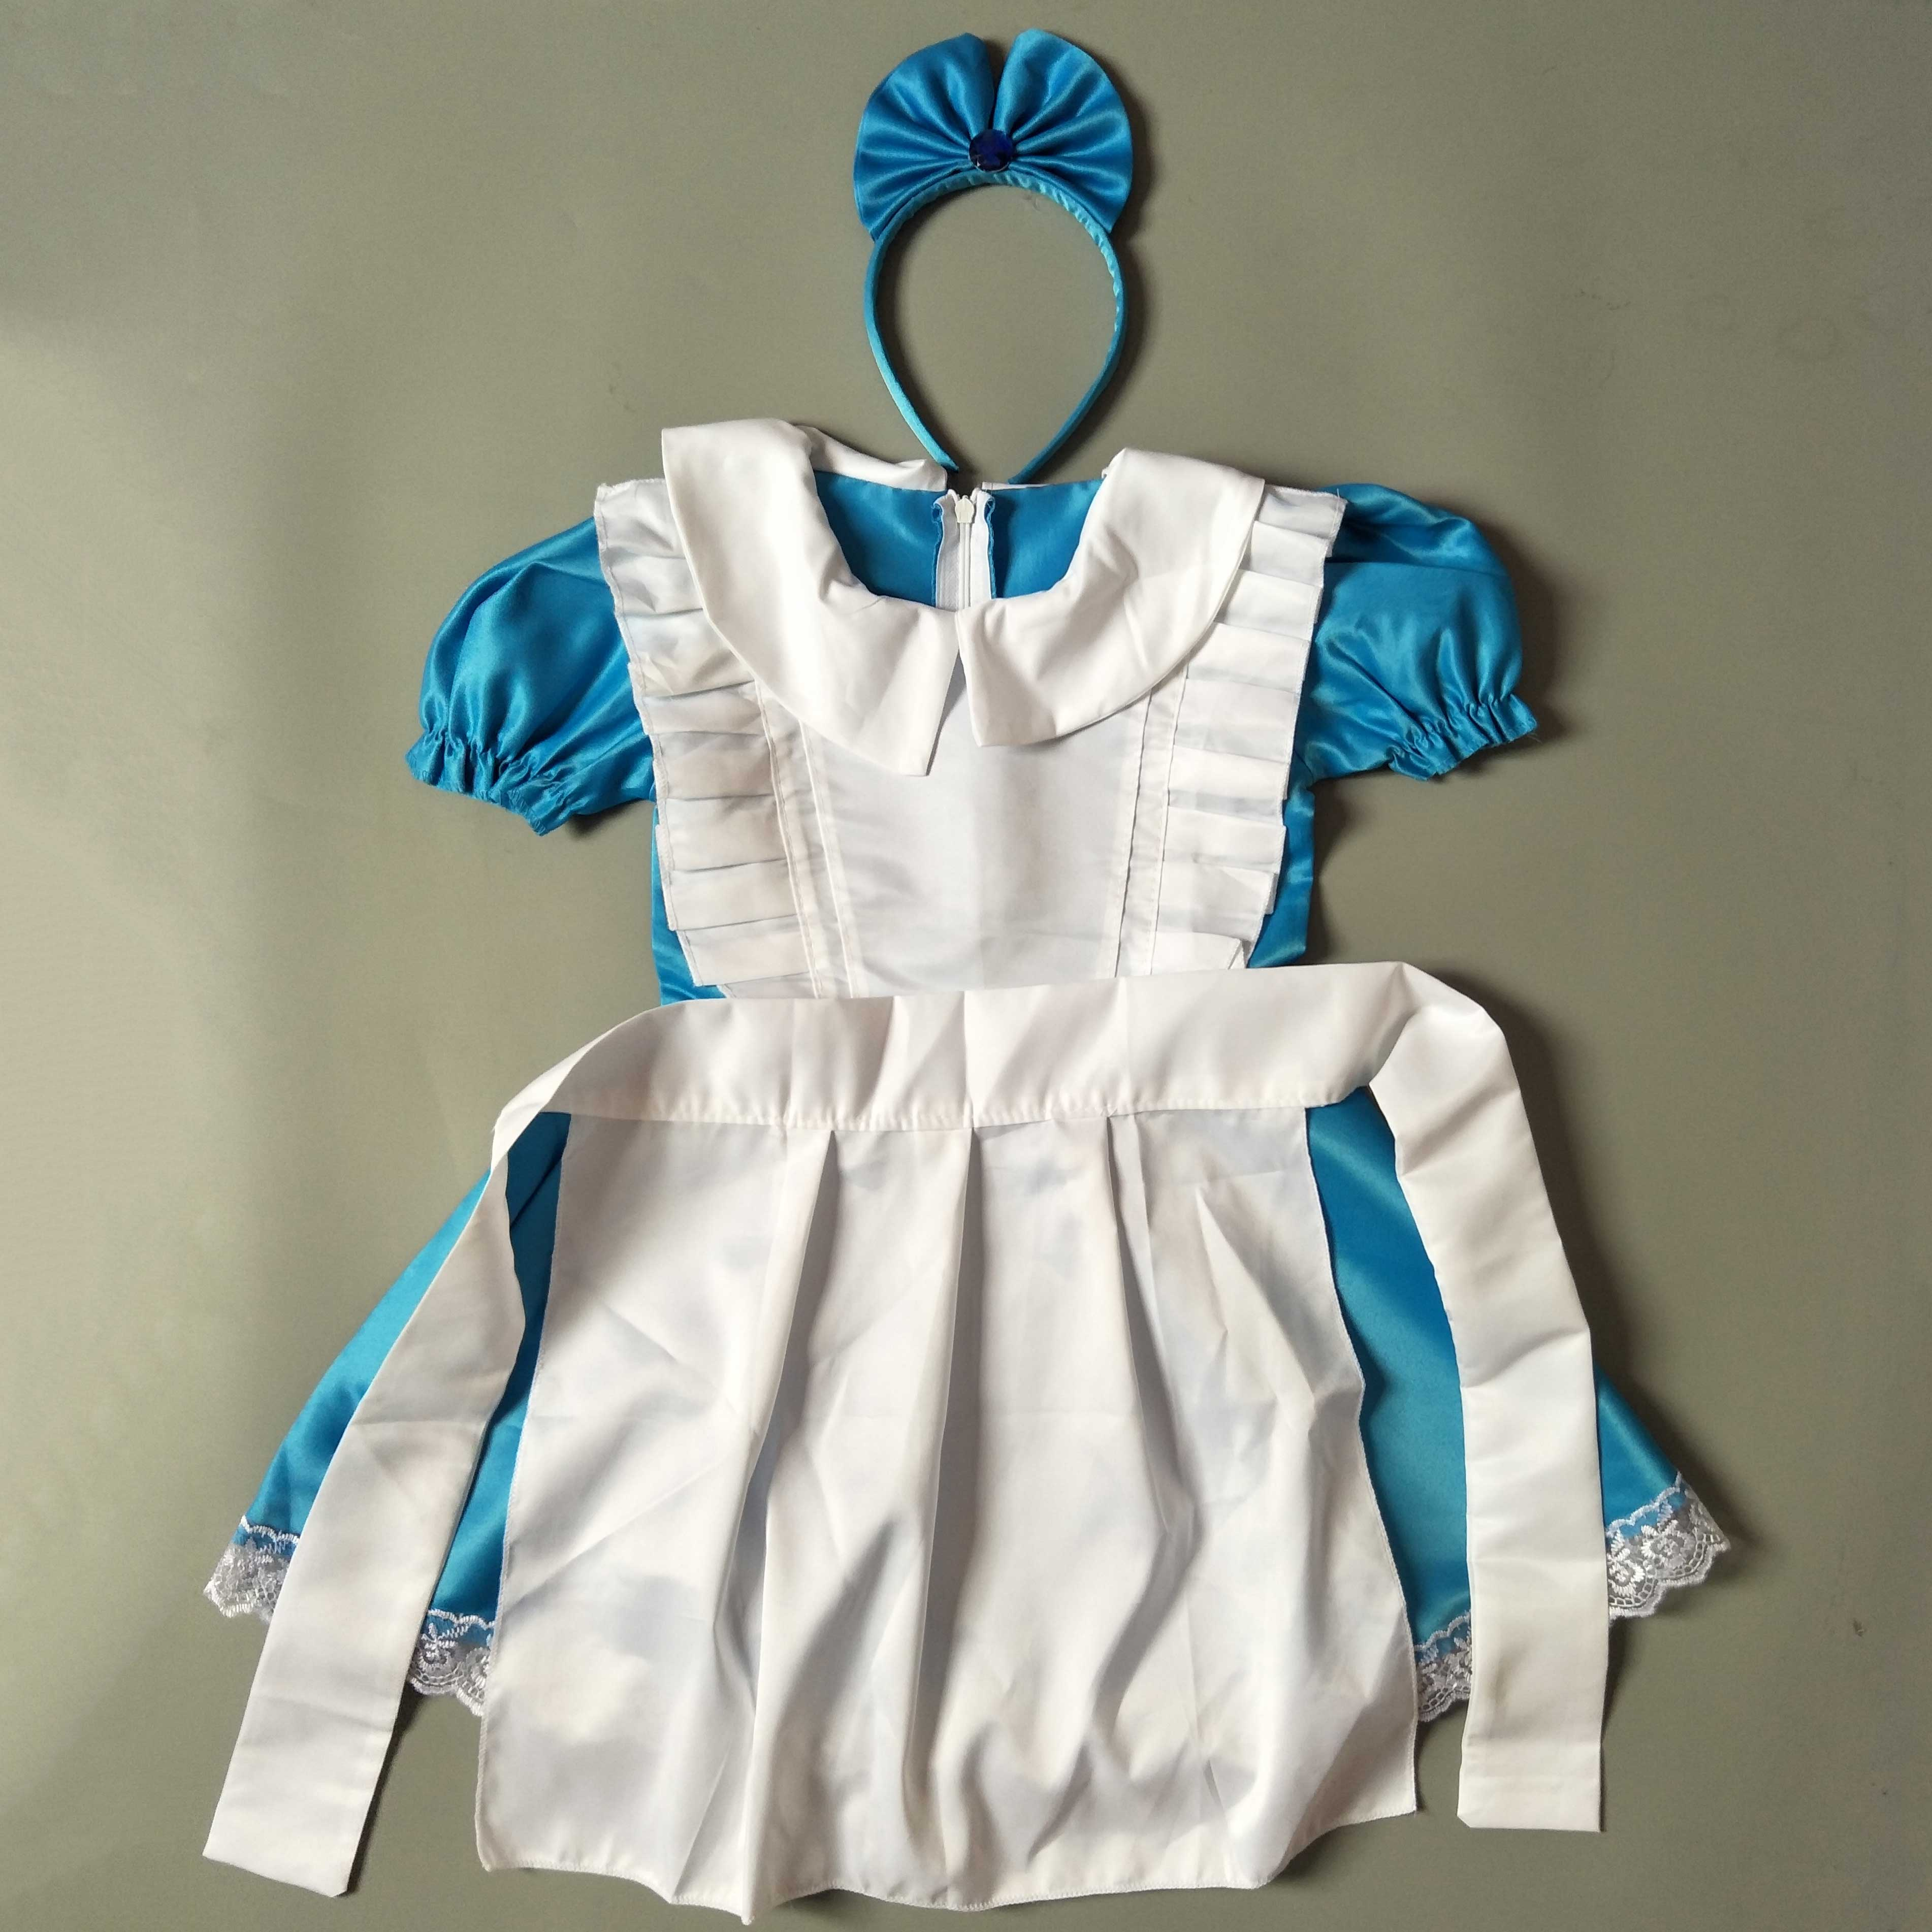 Toddler Halloween Costumes Girl Kids Cartoon Character Alice In Wonderland Baby Girl Party Dress Children Outfits